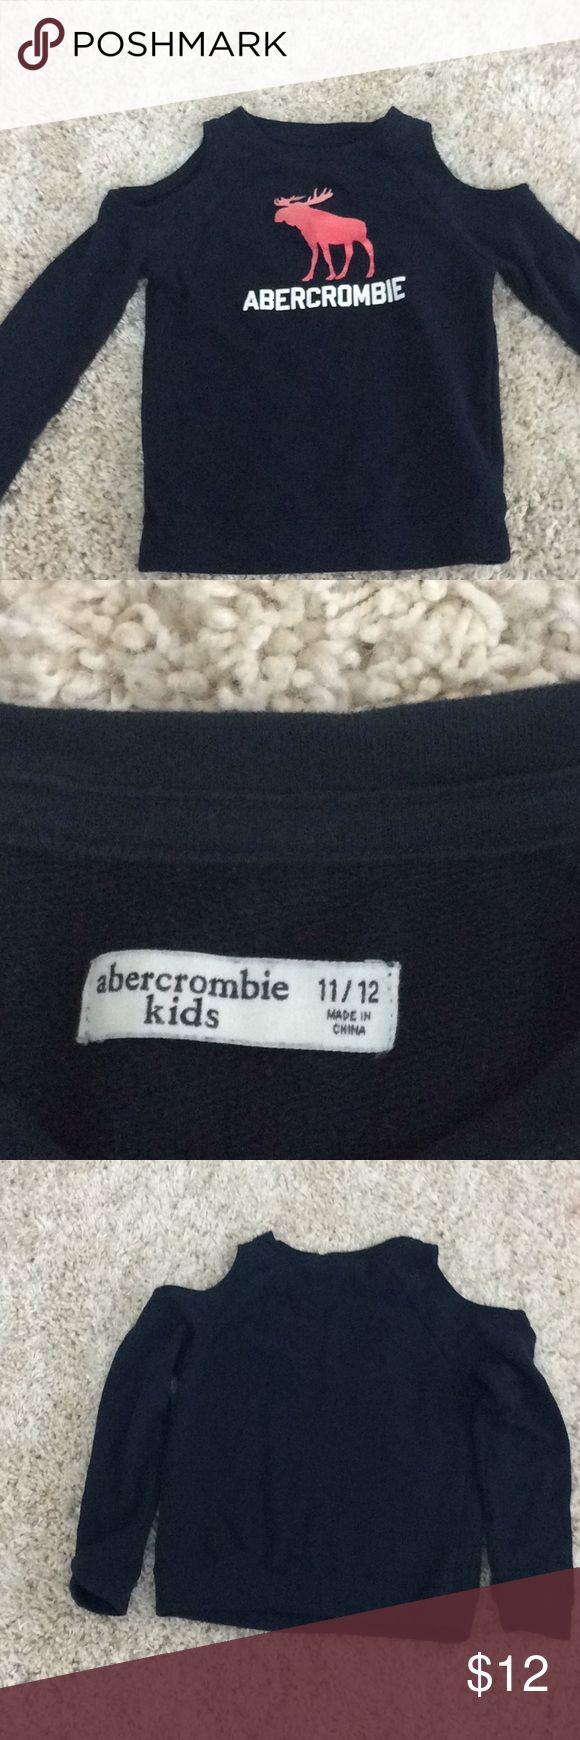 Cold shoulder Abercrombie girls sweater Pink glitter, navy blue, white Abercrombie writing Like new abercrombie kids Shirts & Tops Sweaters